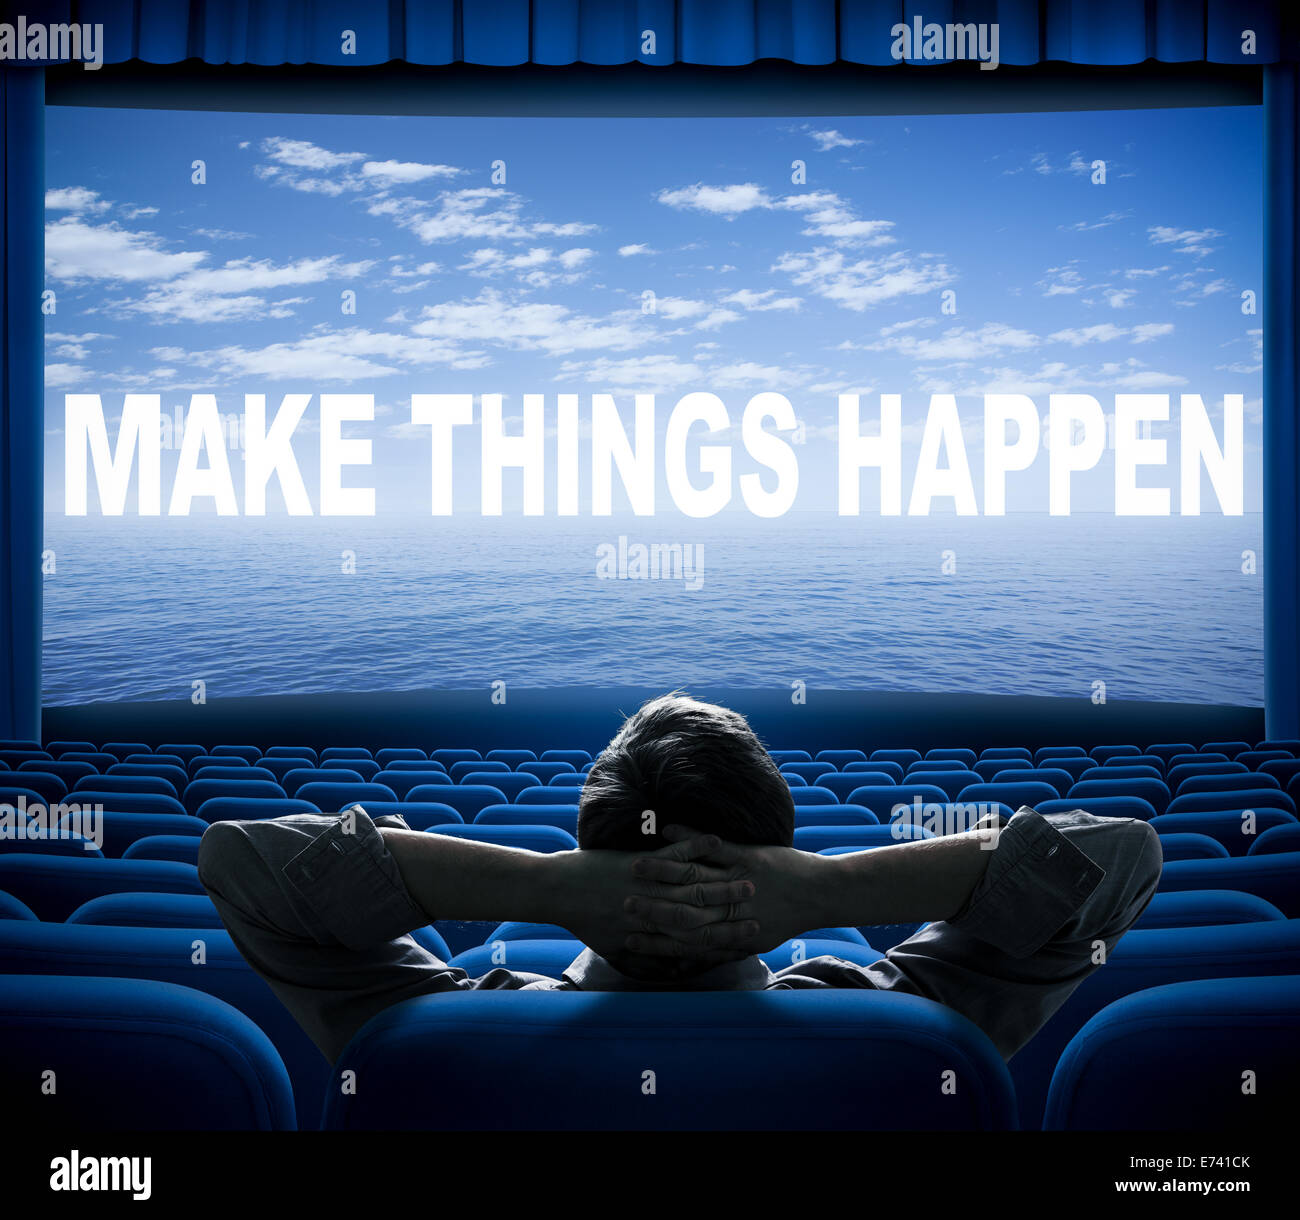 make things happen phrase on cinema screen - Stock Image